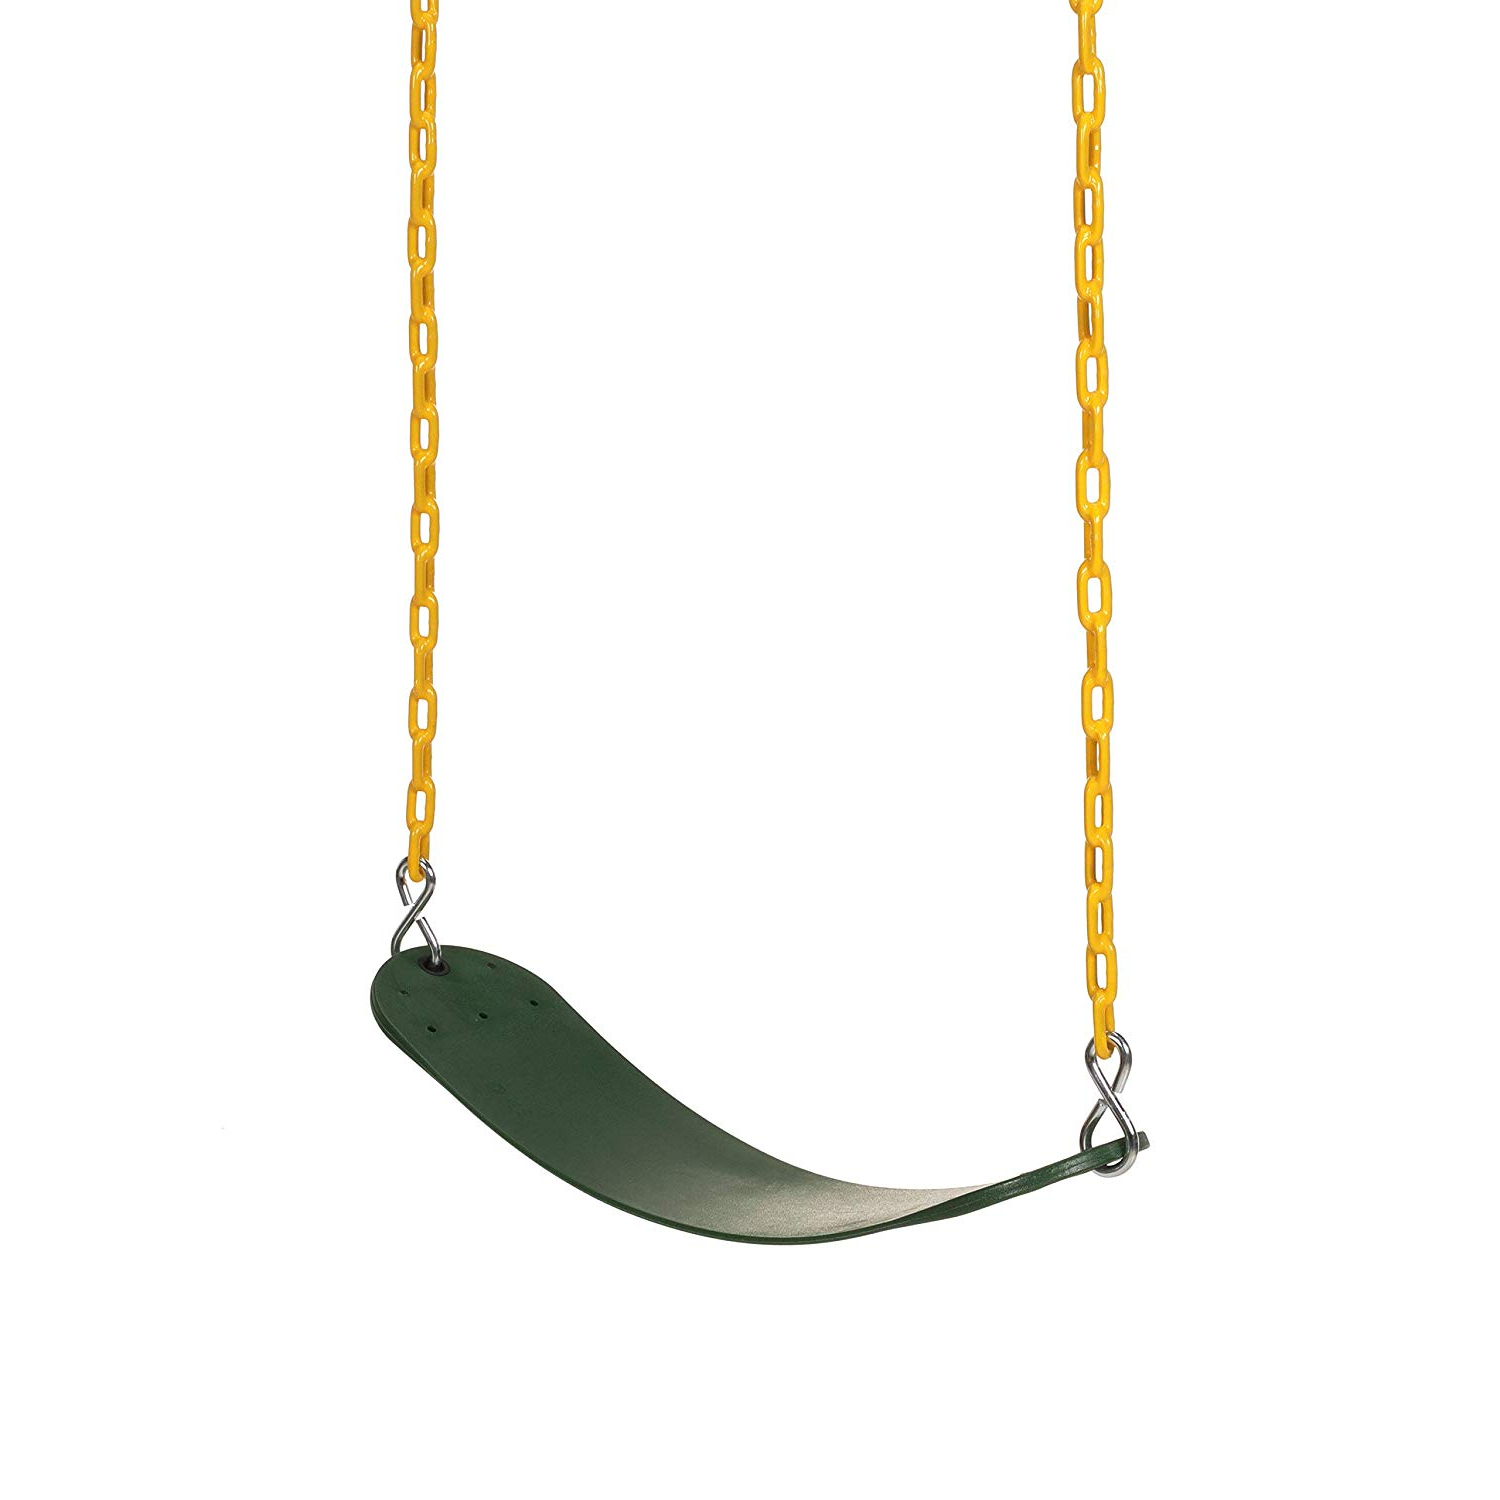 Outdoor Play Area Interchangeable Baby Playground Commercial In Latest Swing Seats With Chains (Gallery 26 of 30)